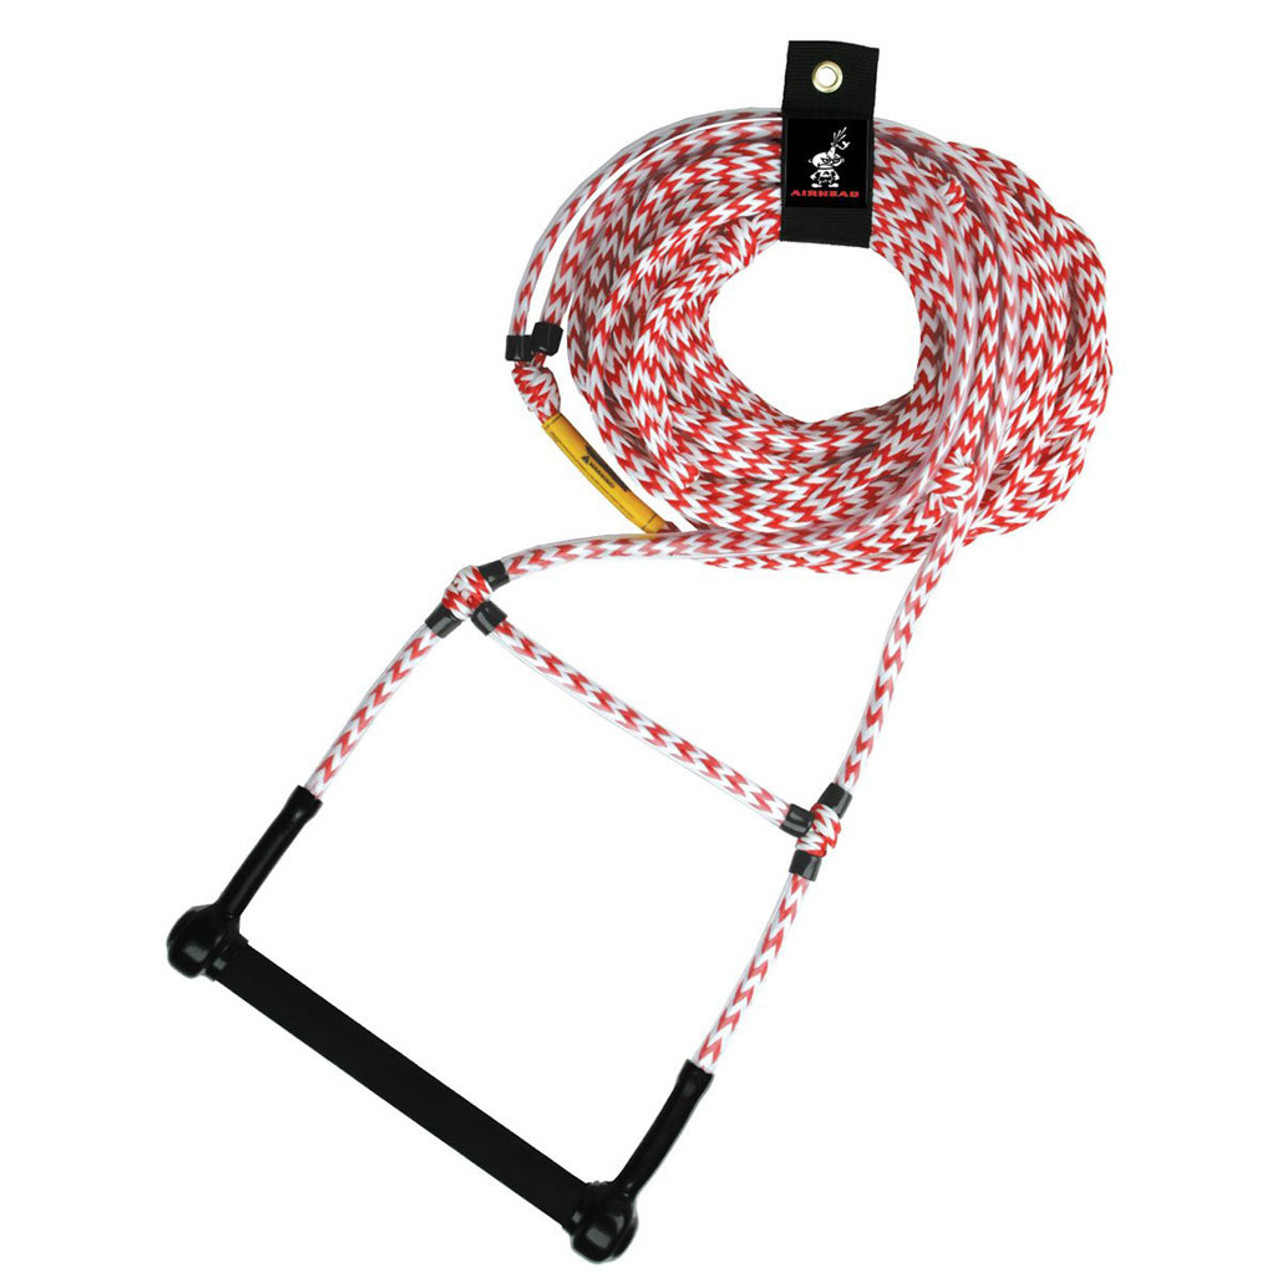 Airhead 1 Section Deep V Ez Up Slalom Training Water Ski Rope 75 Boater S Outlet